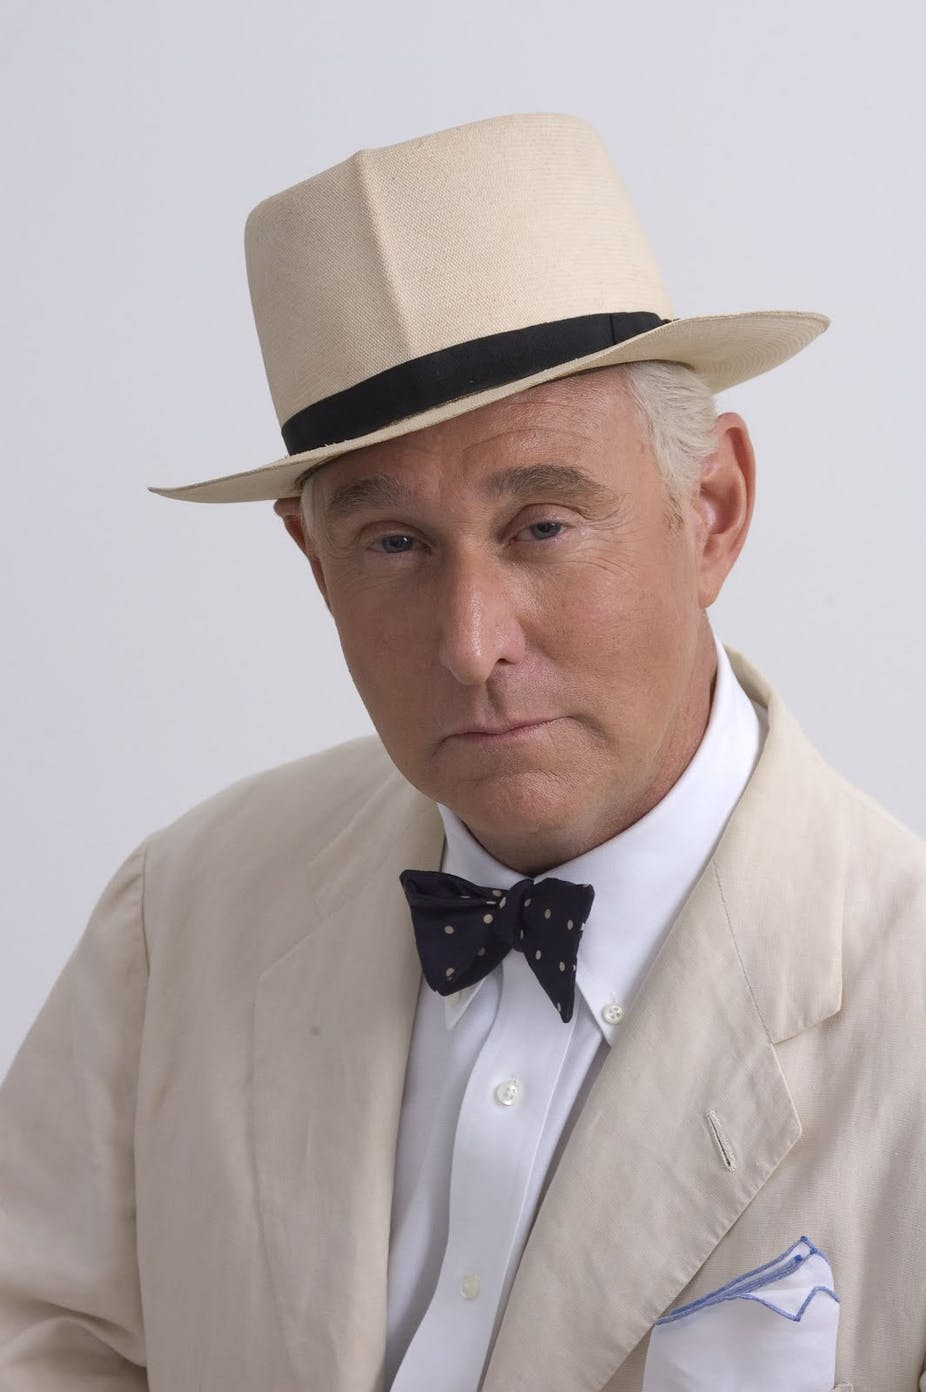 The 67-year old son of father (?) and mother(?) Roger Stone in 2020 photo. Roger Stone earned a million dollar salary - leaving the net worth at million in 2020